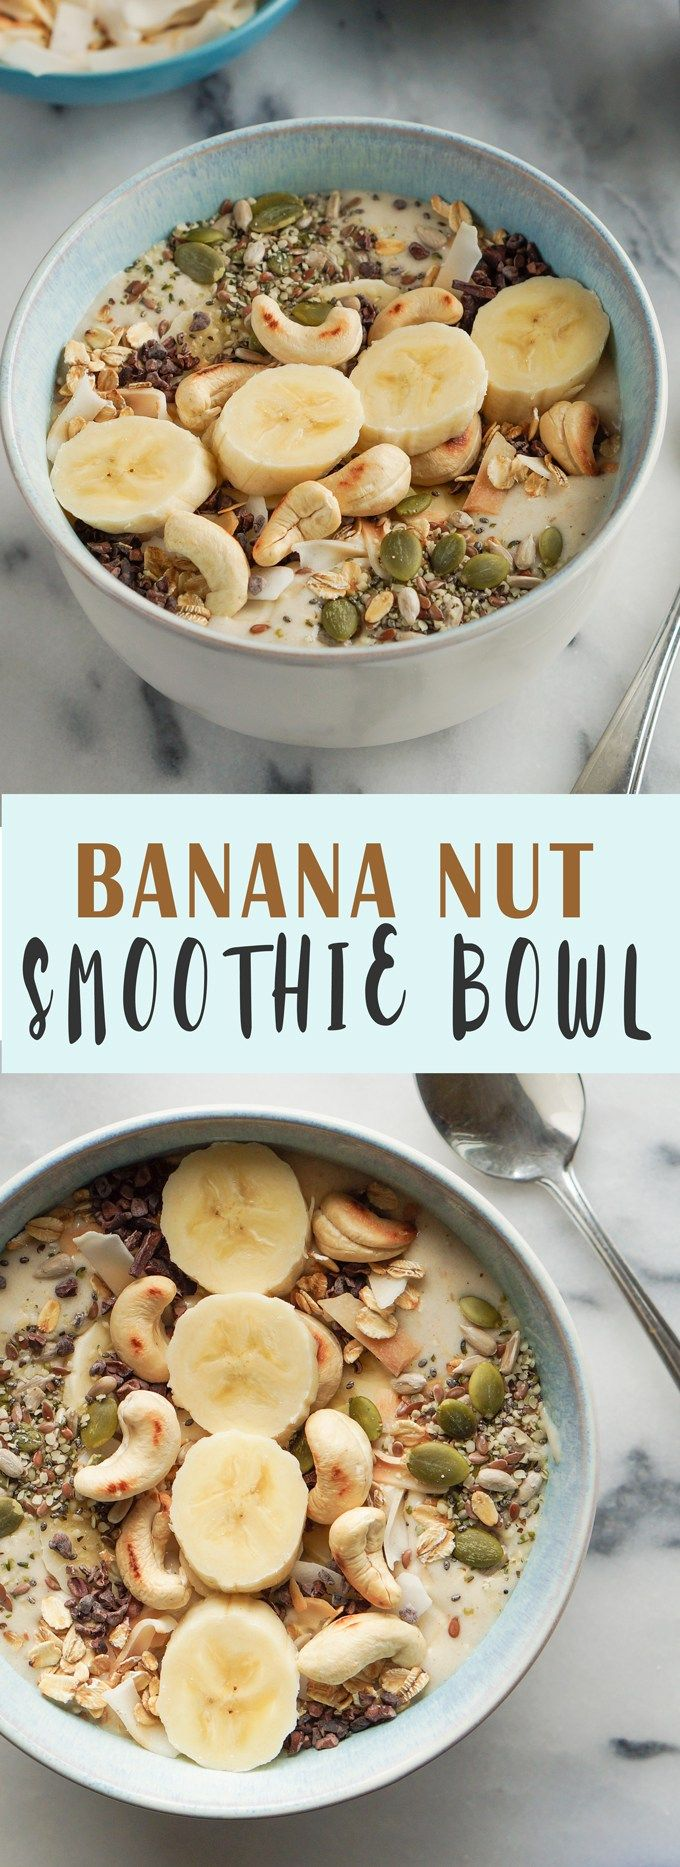 The Ultimate Banana Nut Smoothie Bowl